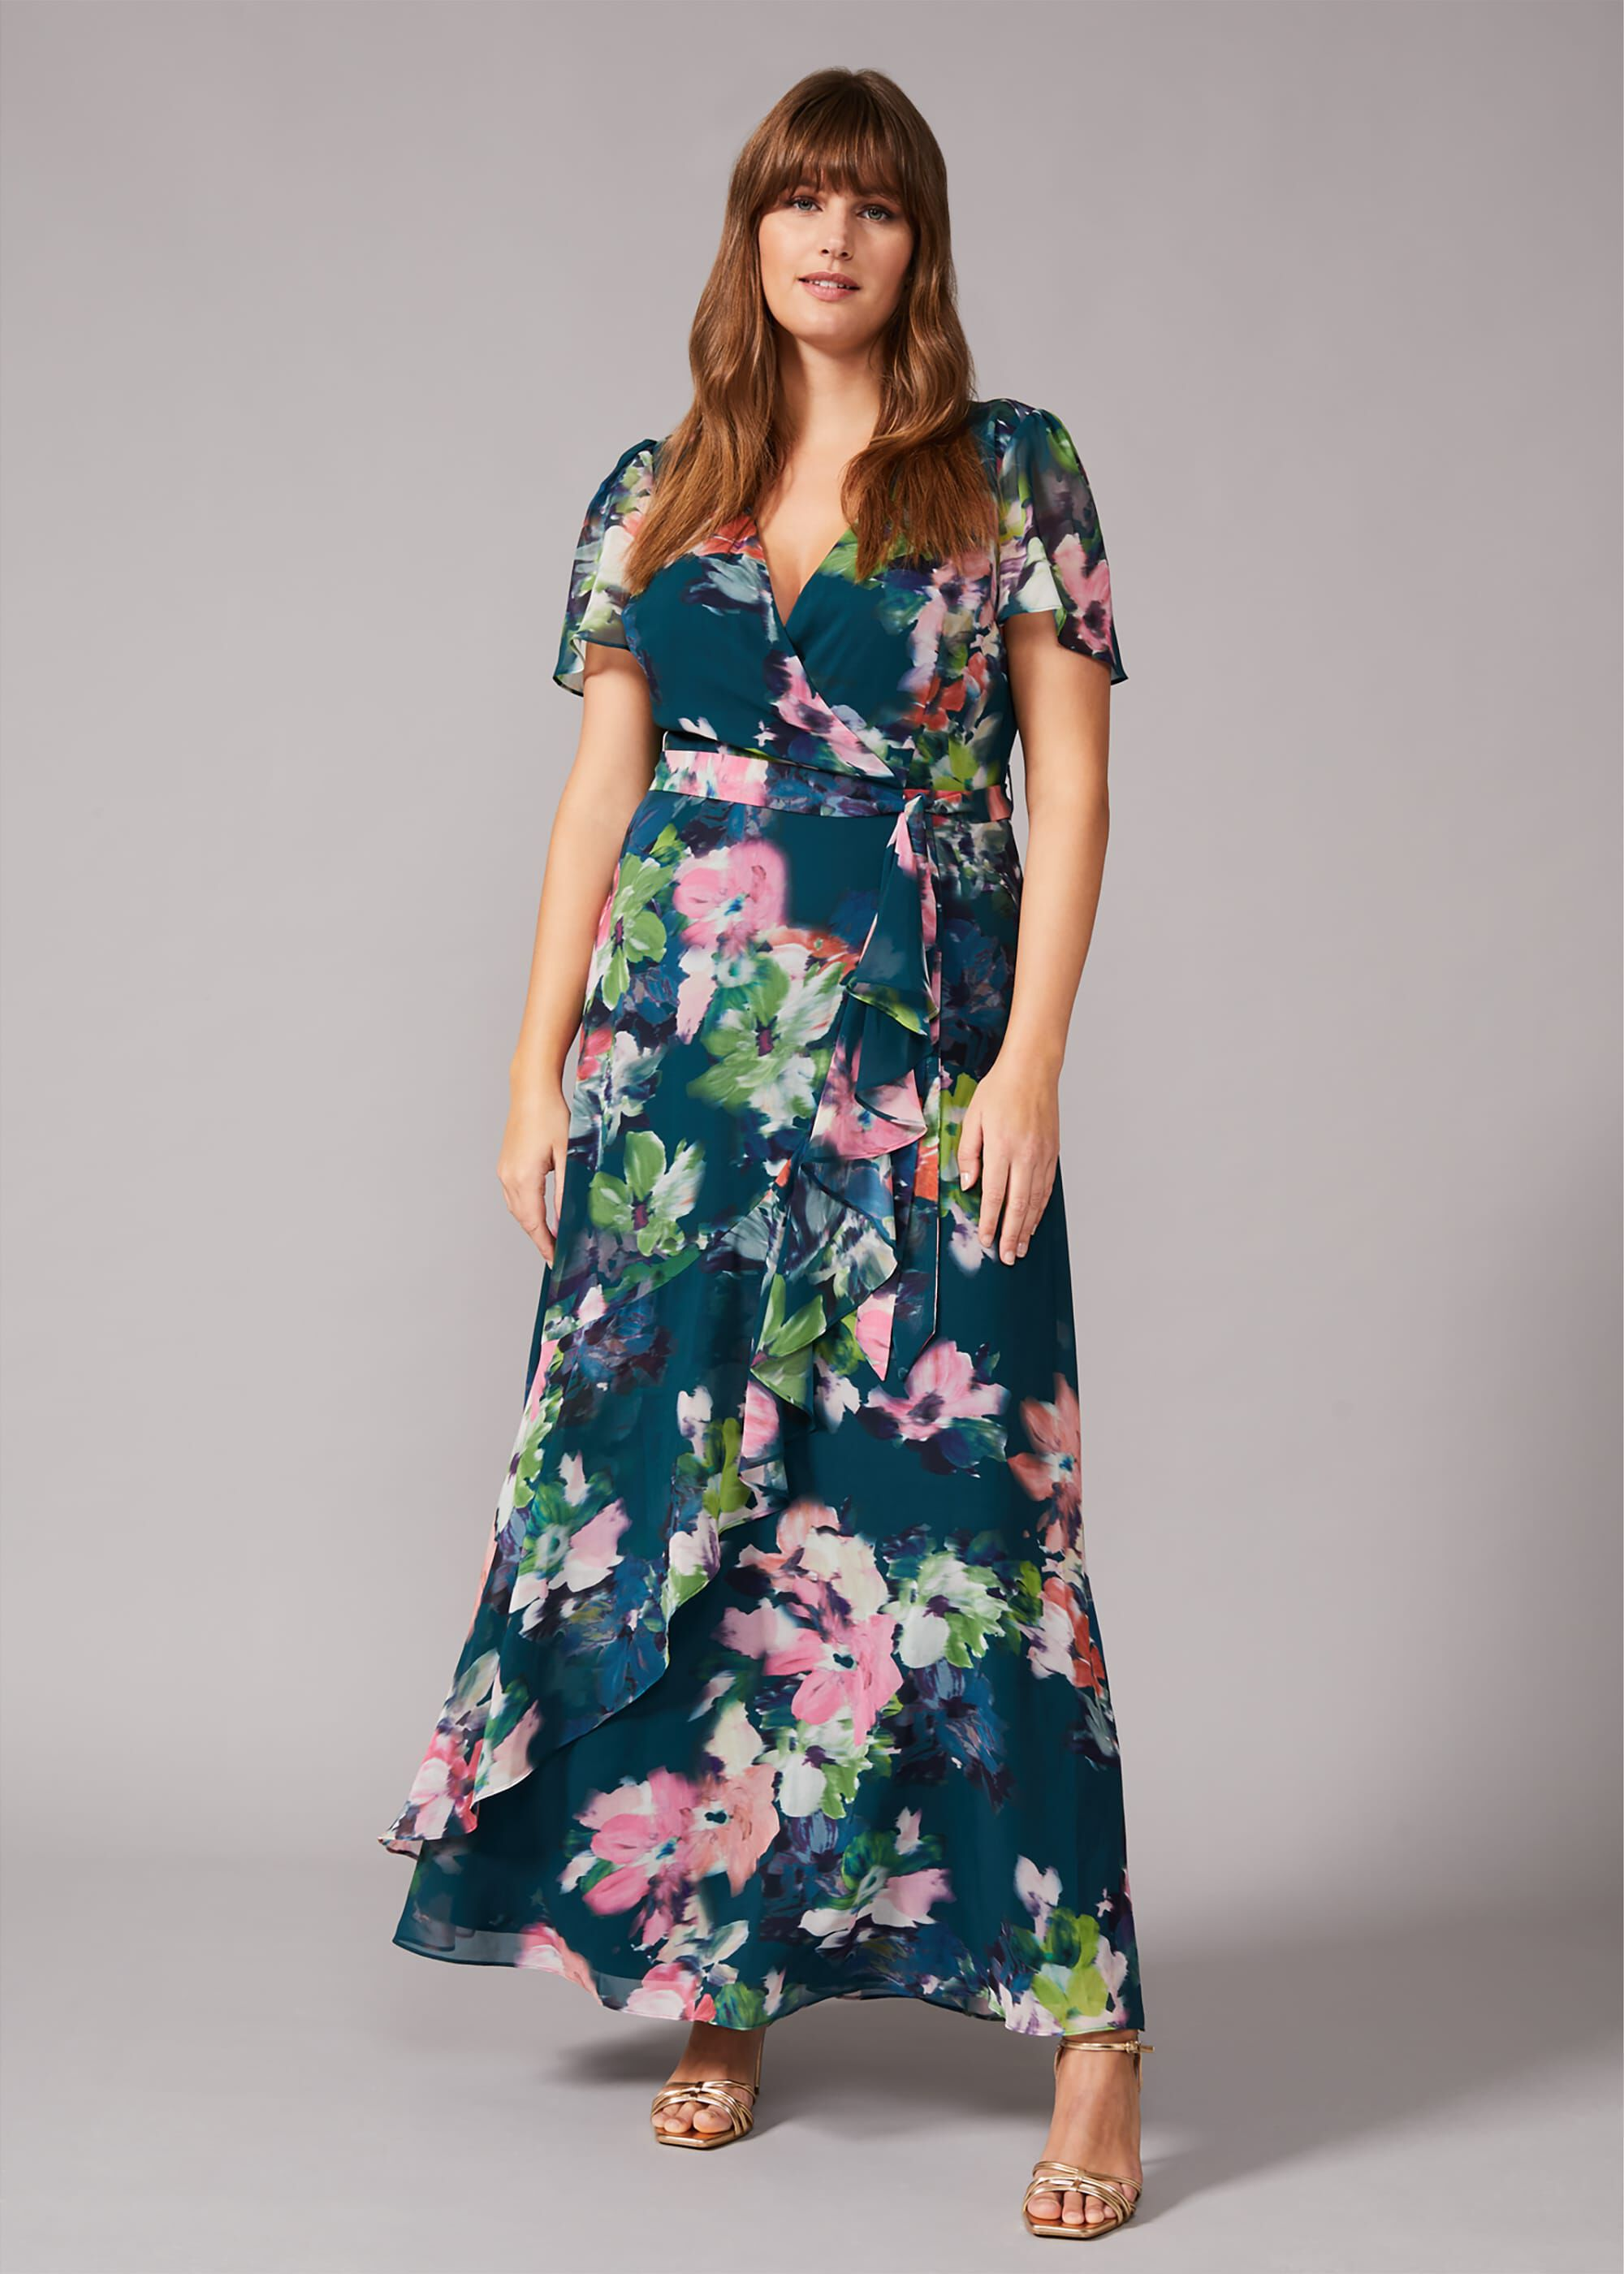 Studio 8 Cailyn Floral Maxi Dress, Green, Maxi, Occasion Dress